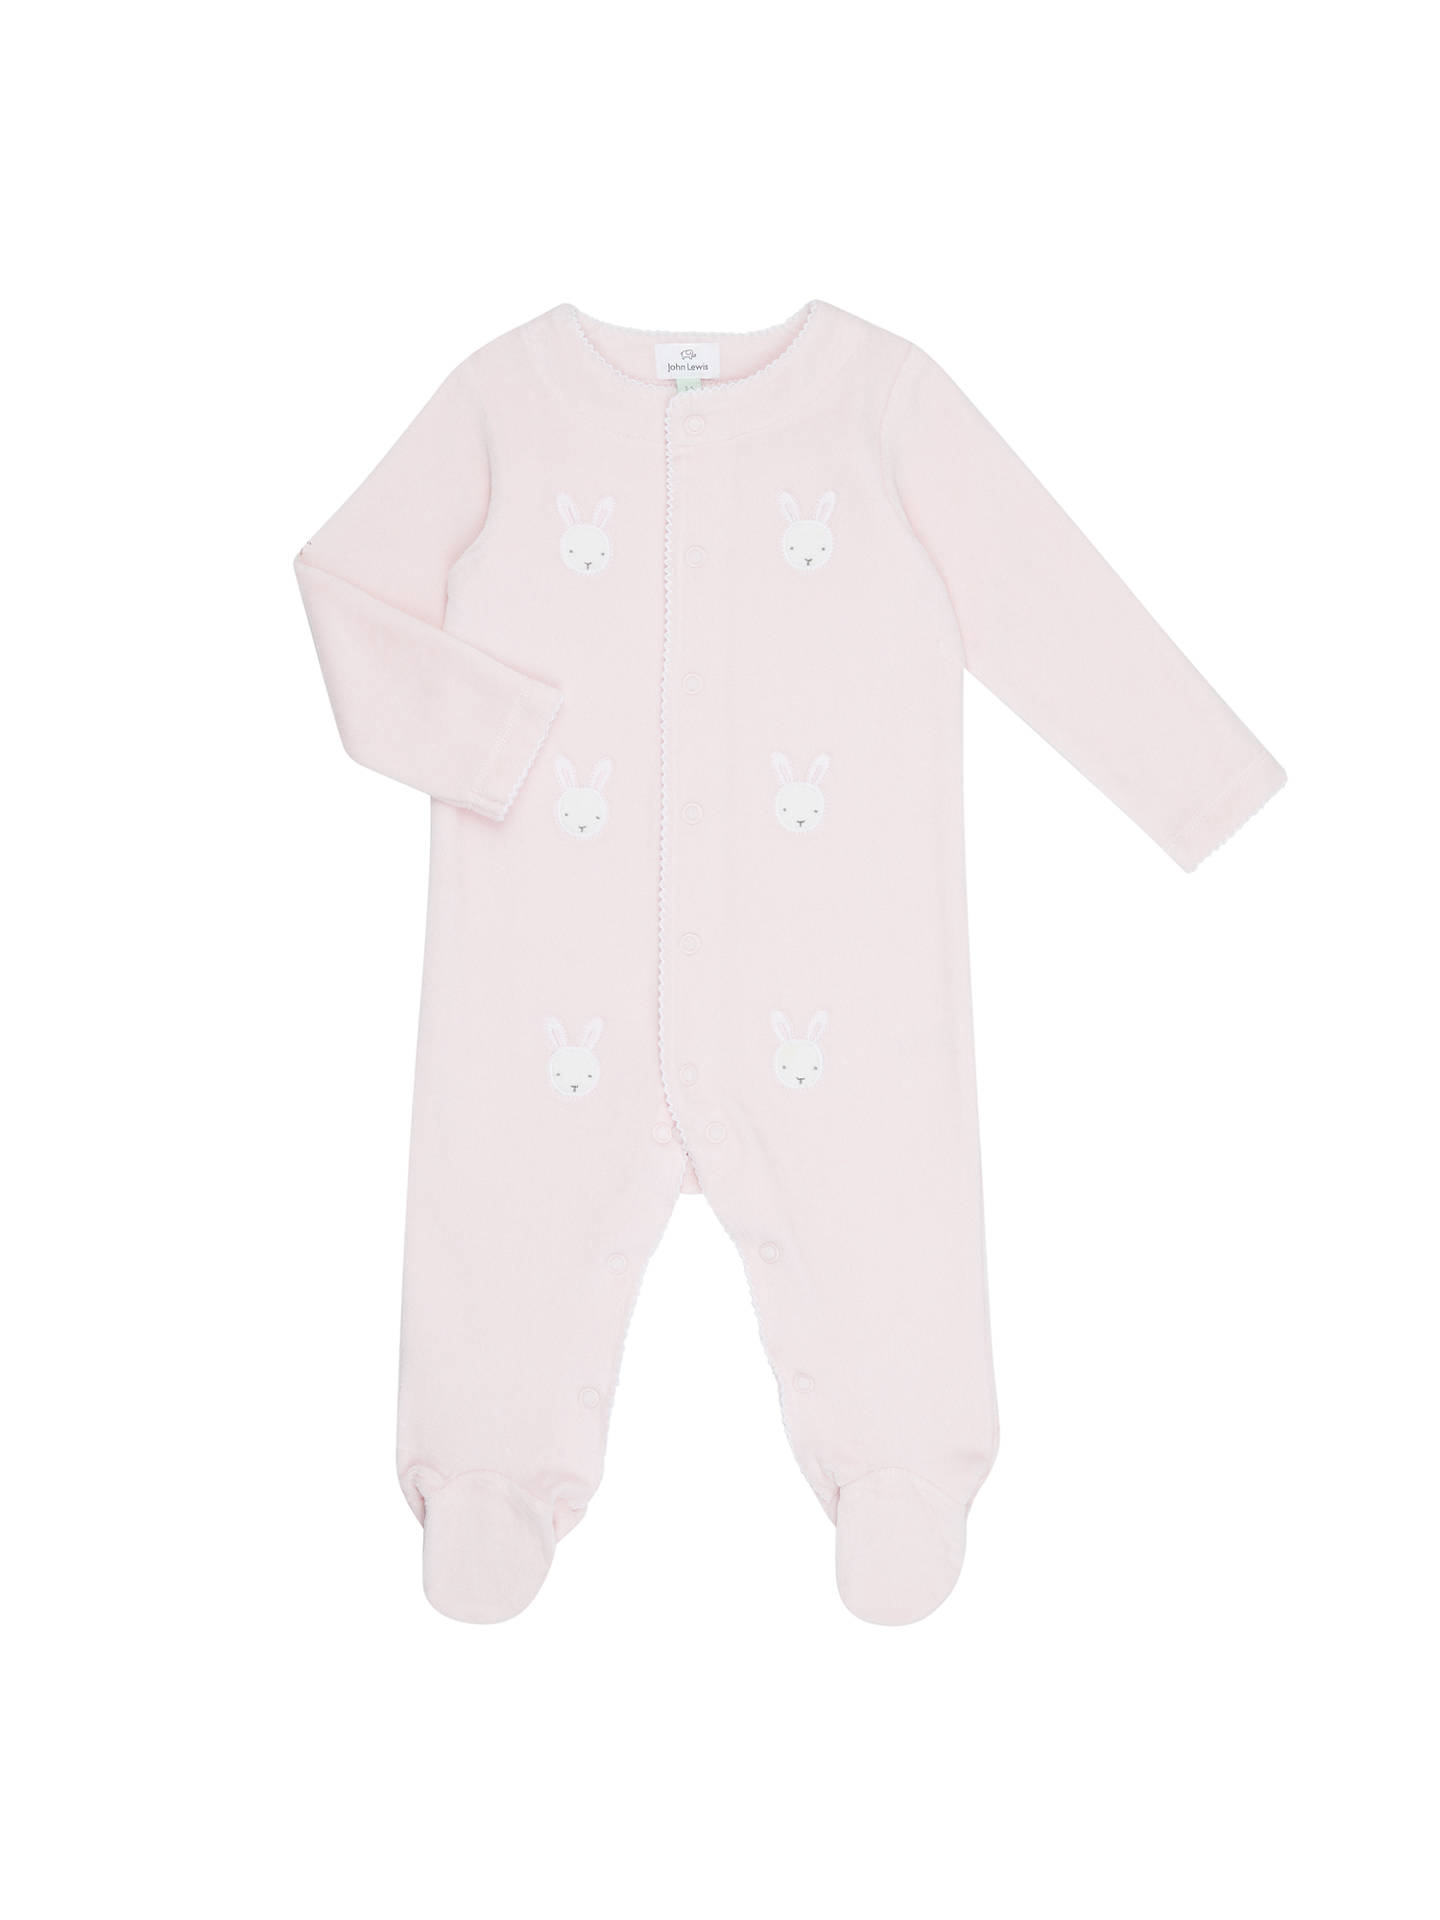 fee37c992 John Lewis   Partners Baby Rabbit Velour Sleepsuit